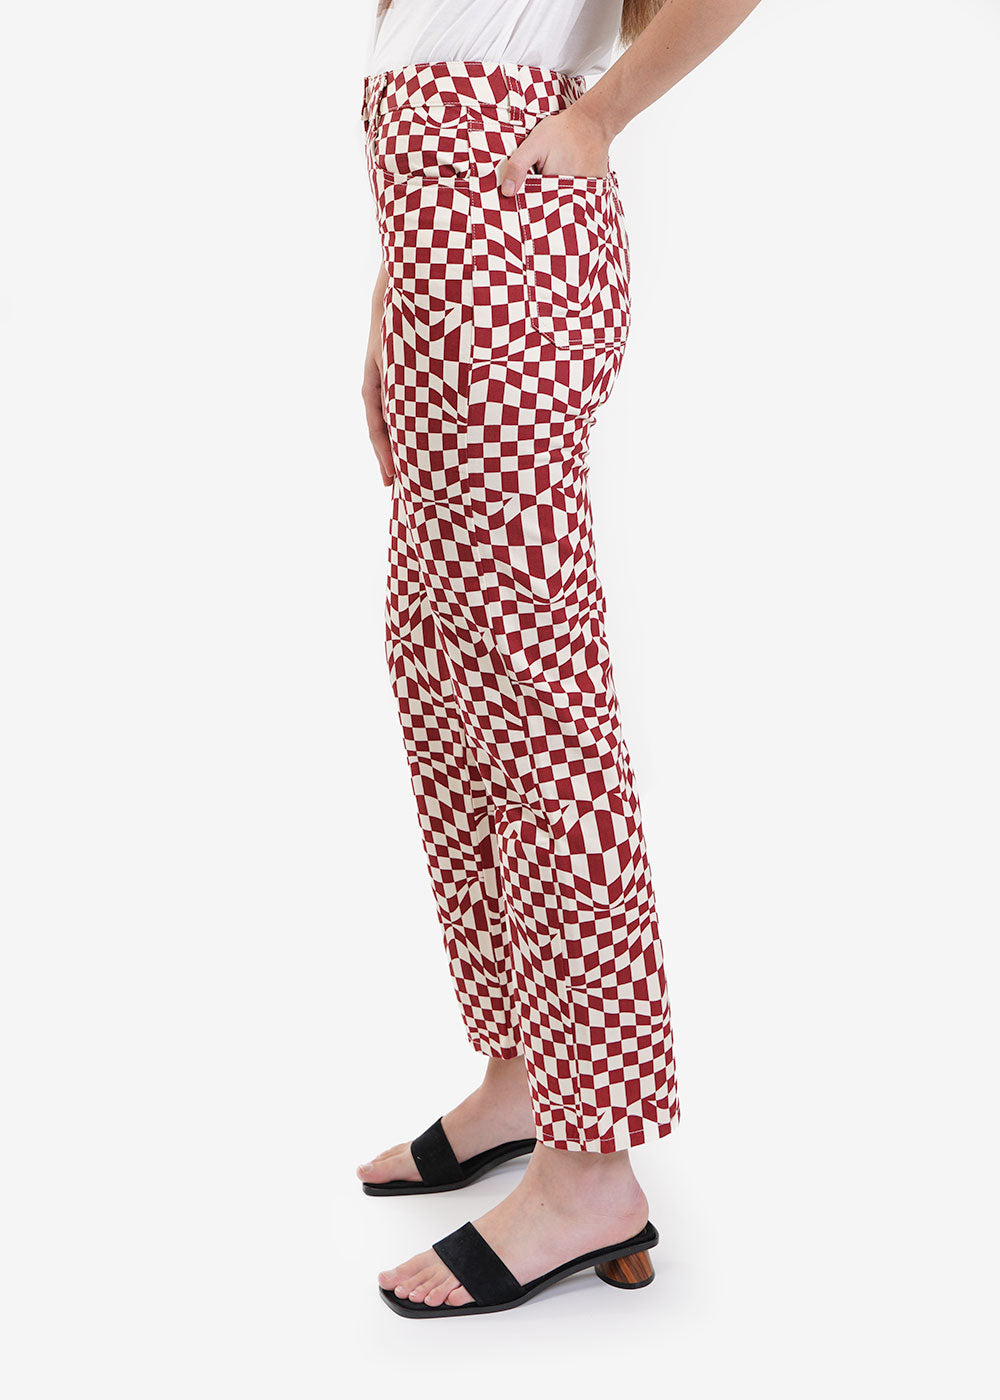 Paloma Wool Realmonte Trousers — Shop sustainable fashion and slow fashion at New Classics Studios